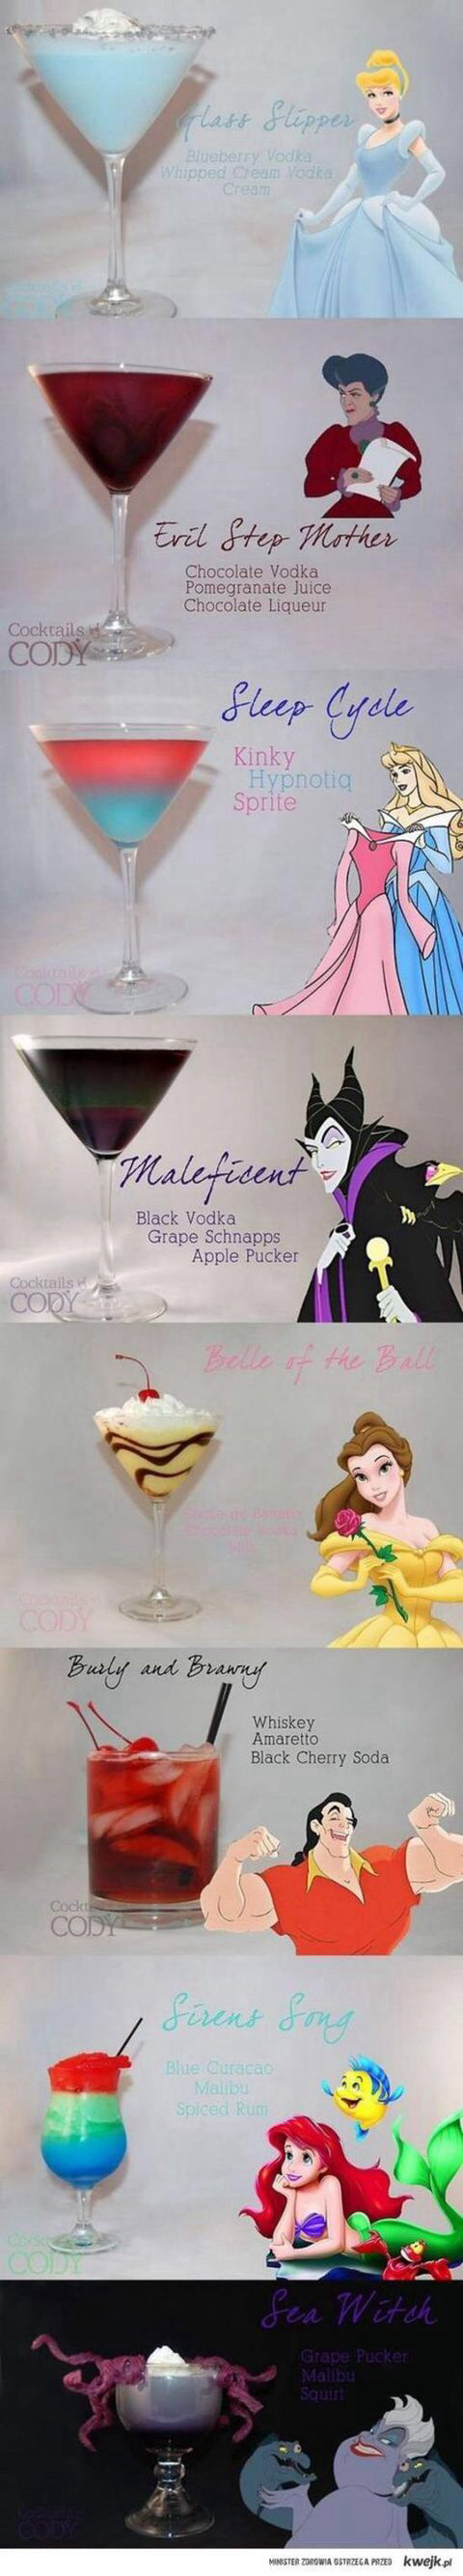 29 disney themed cocktails you need to try asap essen und trinken pinterest getr nke. Black Bedroom Furniture Sets. Home Design Ideas